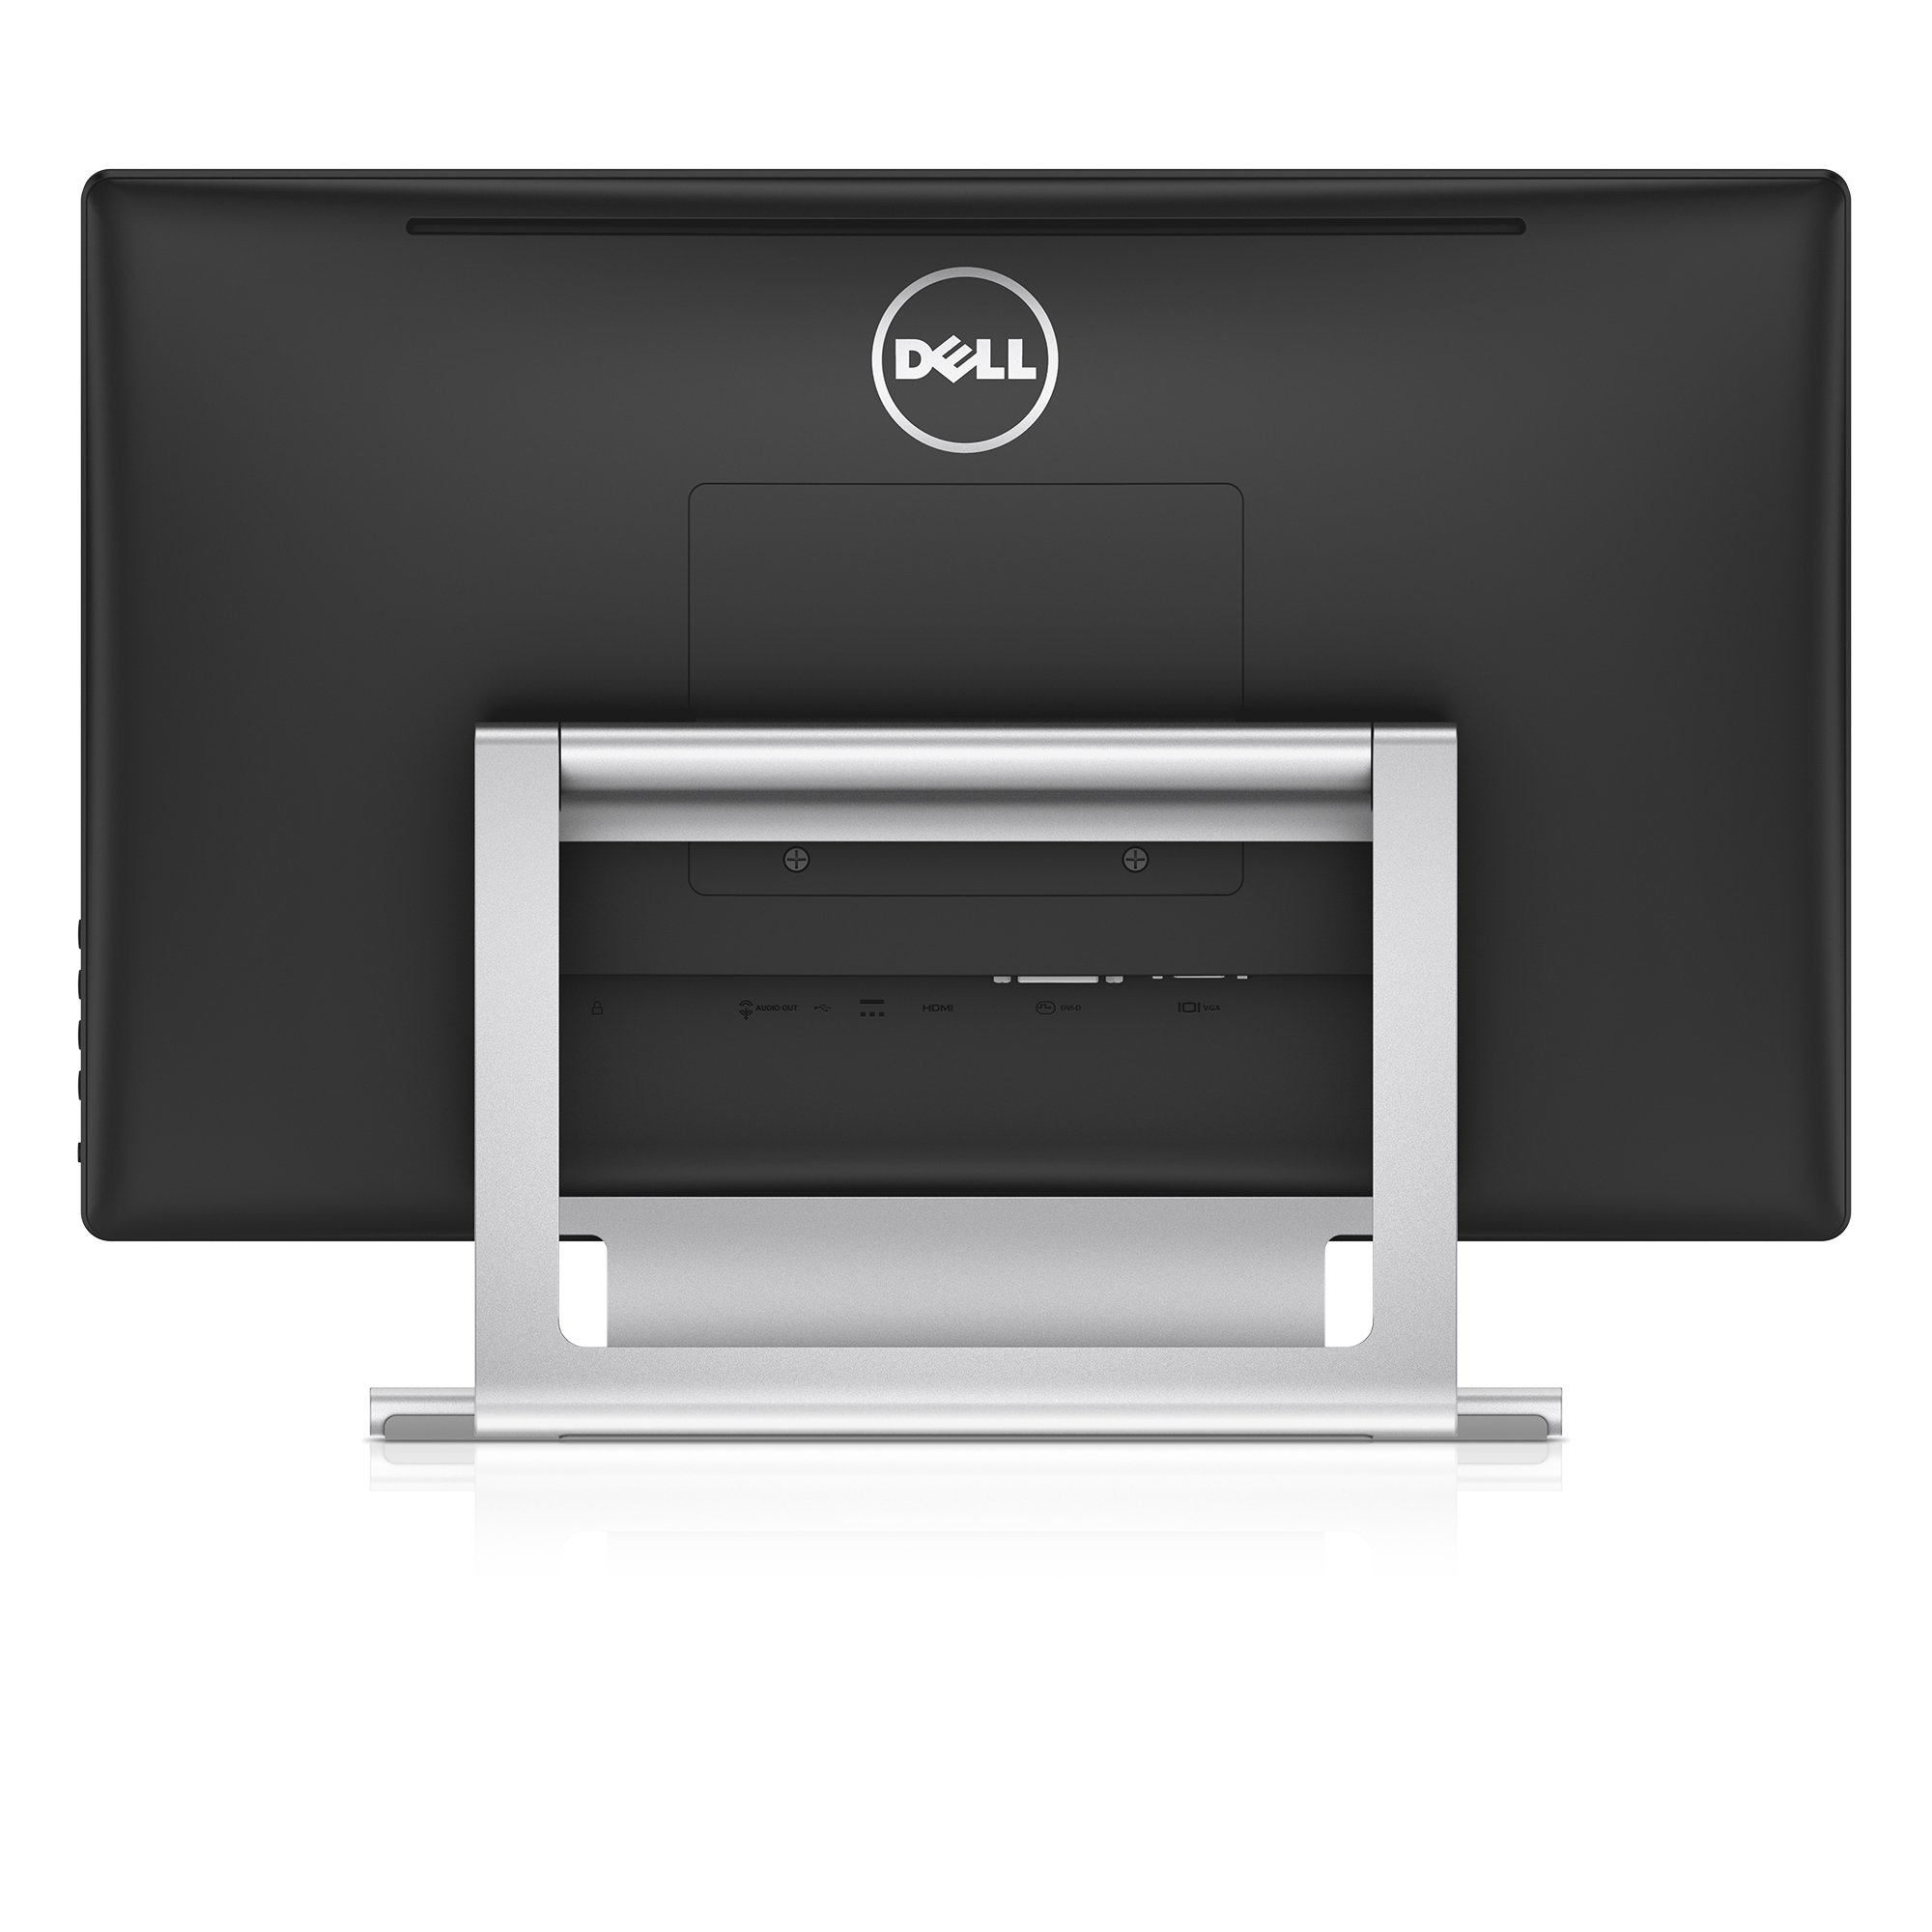 Dell S2240T 21.5-Inch Touch Screen LED-lit Monitor by Dell (Image #2)